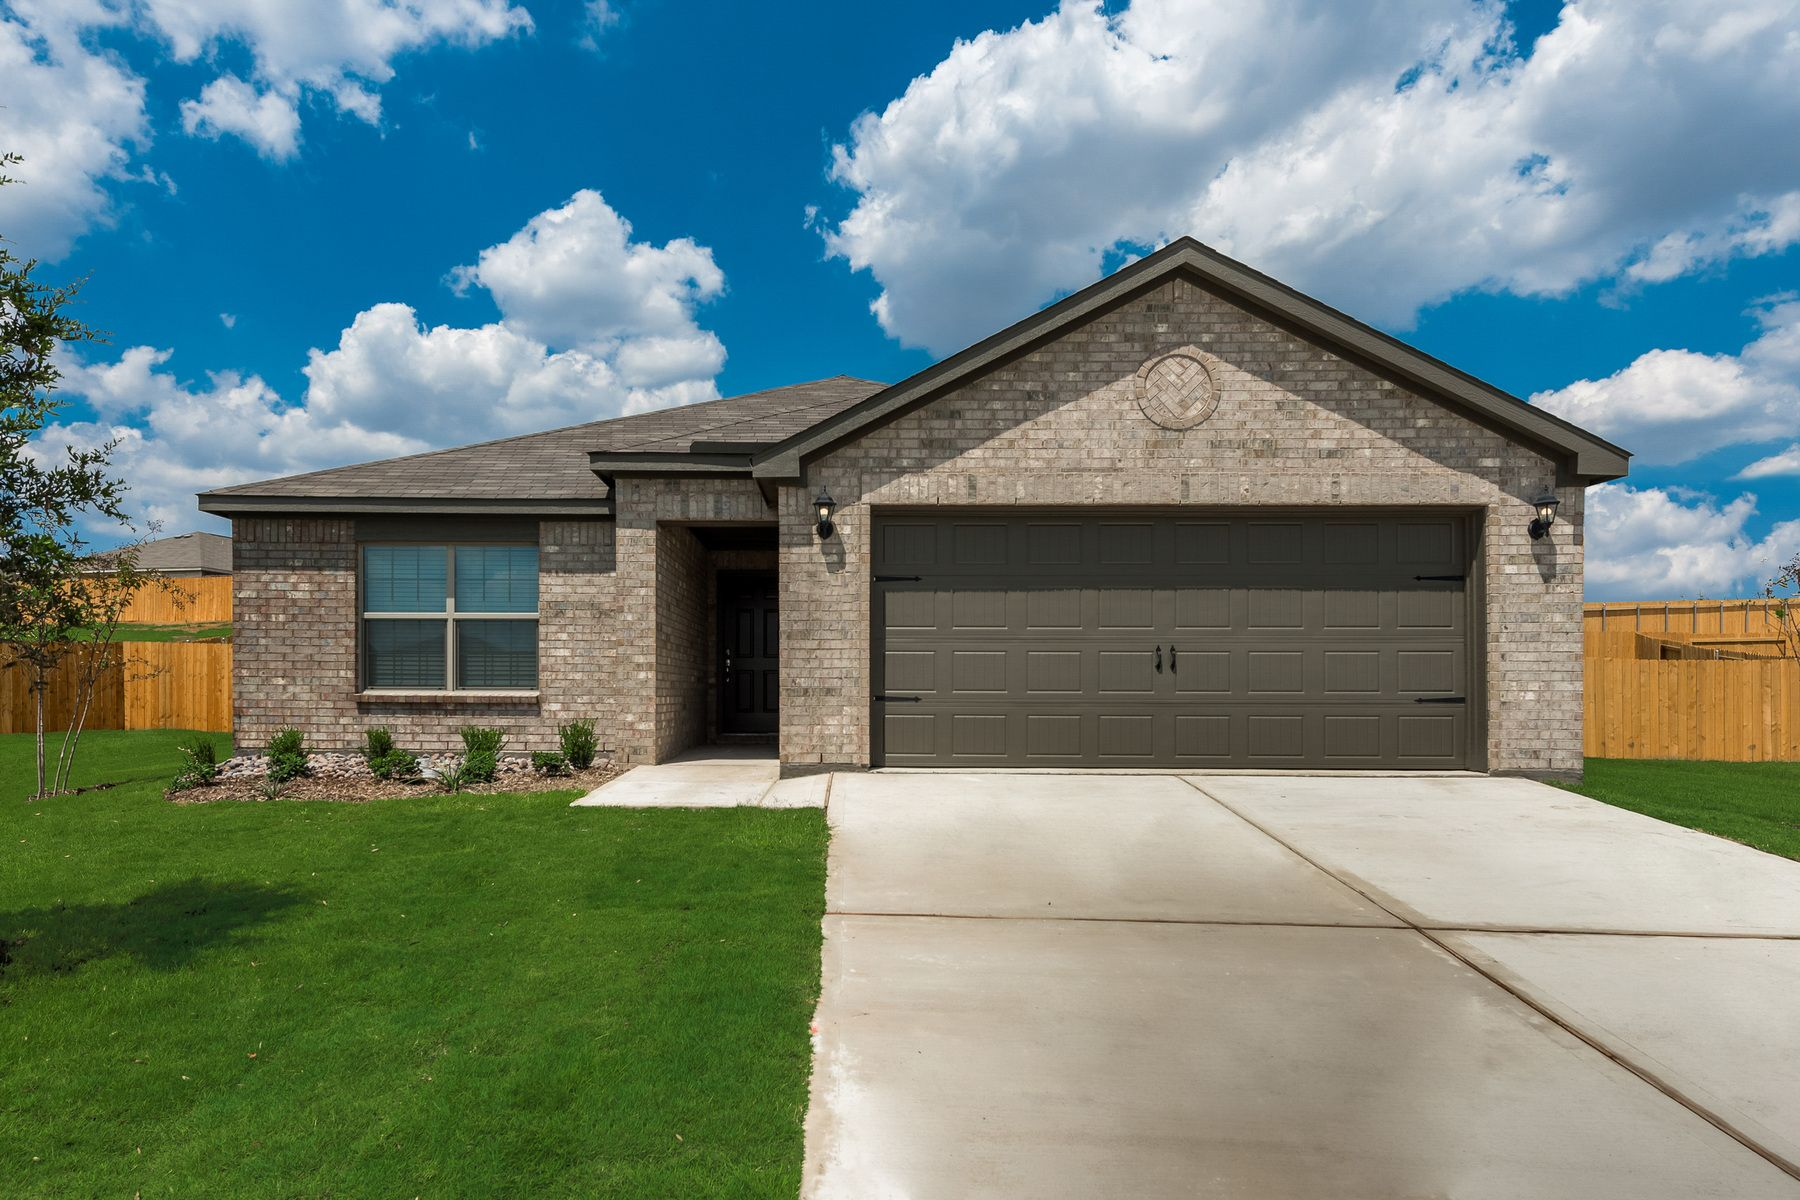 The Rio Grande plan by LGI Homes:The Rio Grande plan is available today at Chisholm Springs!